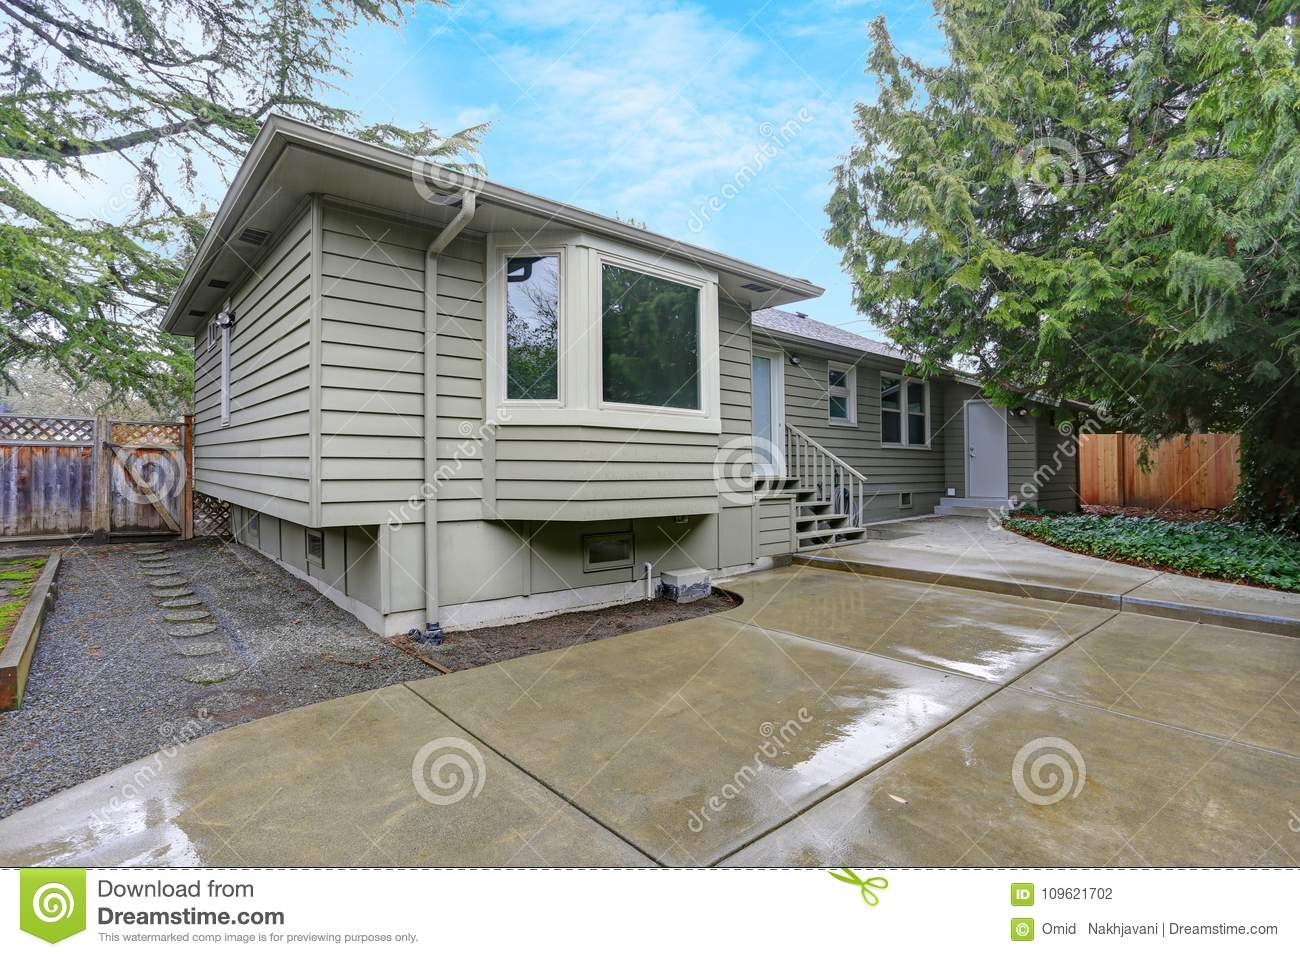 Backyard View Of A Small Home On A Rainy Day Stock Photo ... on riverside home, sunny day home, garden home, easter home, gloomy day home, cloudy day home, fun home, health home, black and white home, paul reubens home, cold home, blu home, farm home,